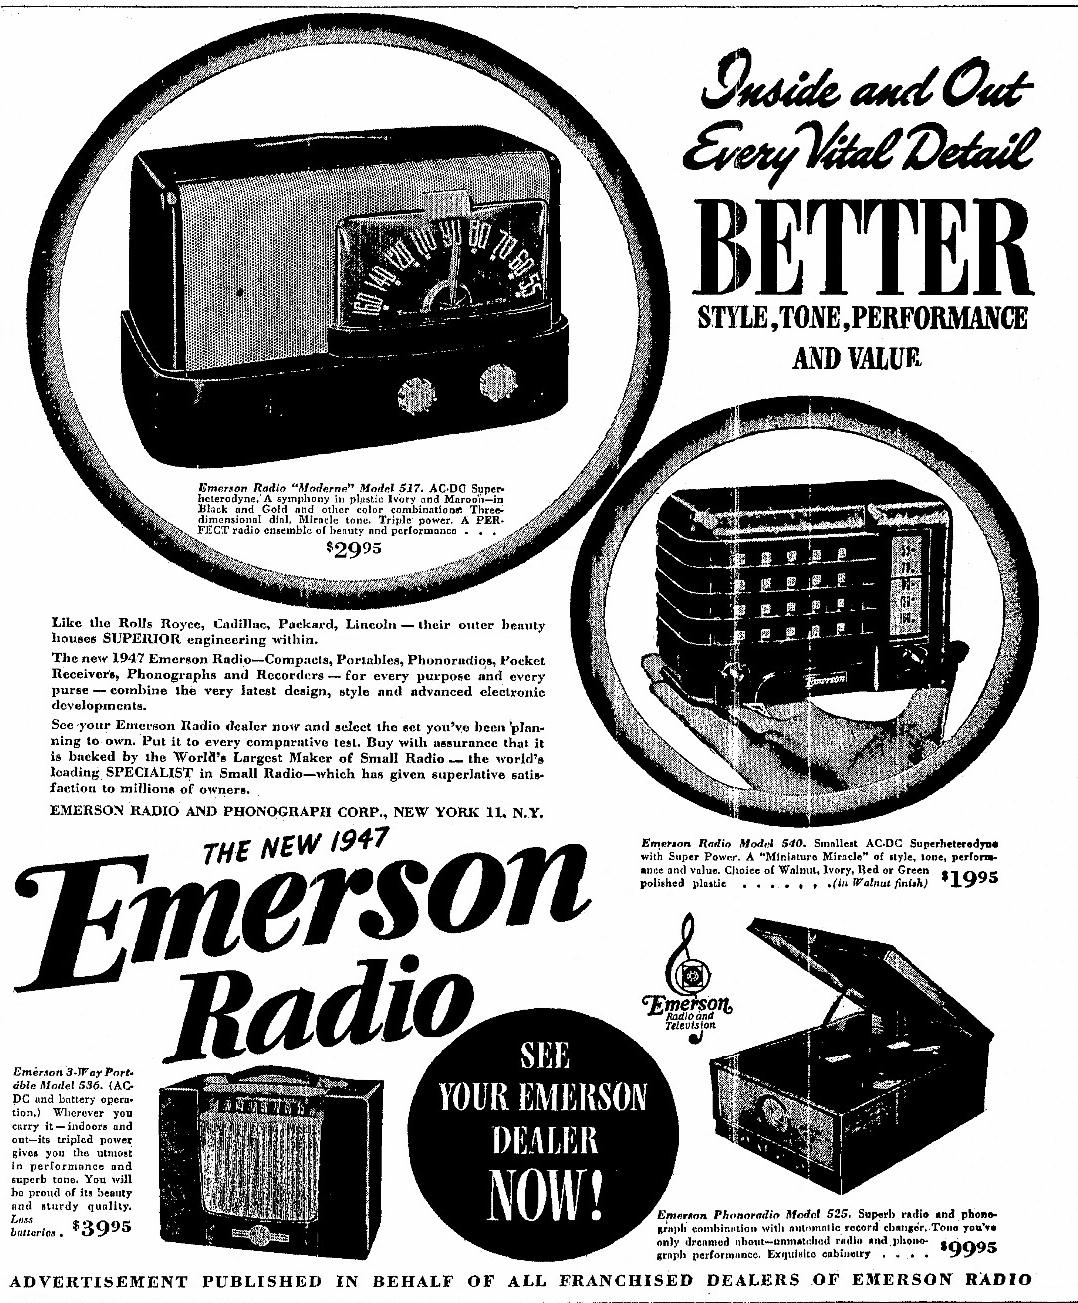 Emerson Model 511 Moderne Plaskon Table Radios 1947 1948 Schematics Click To Enlarge Ad From April